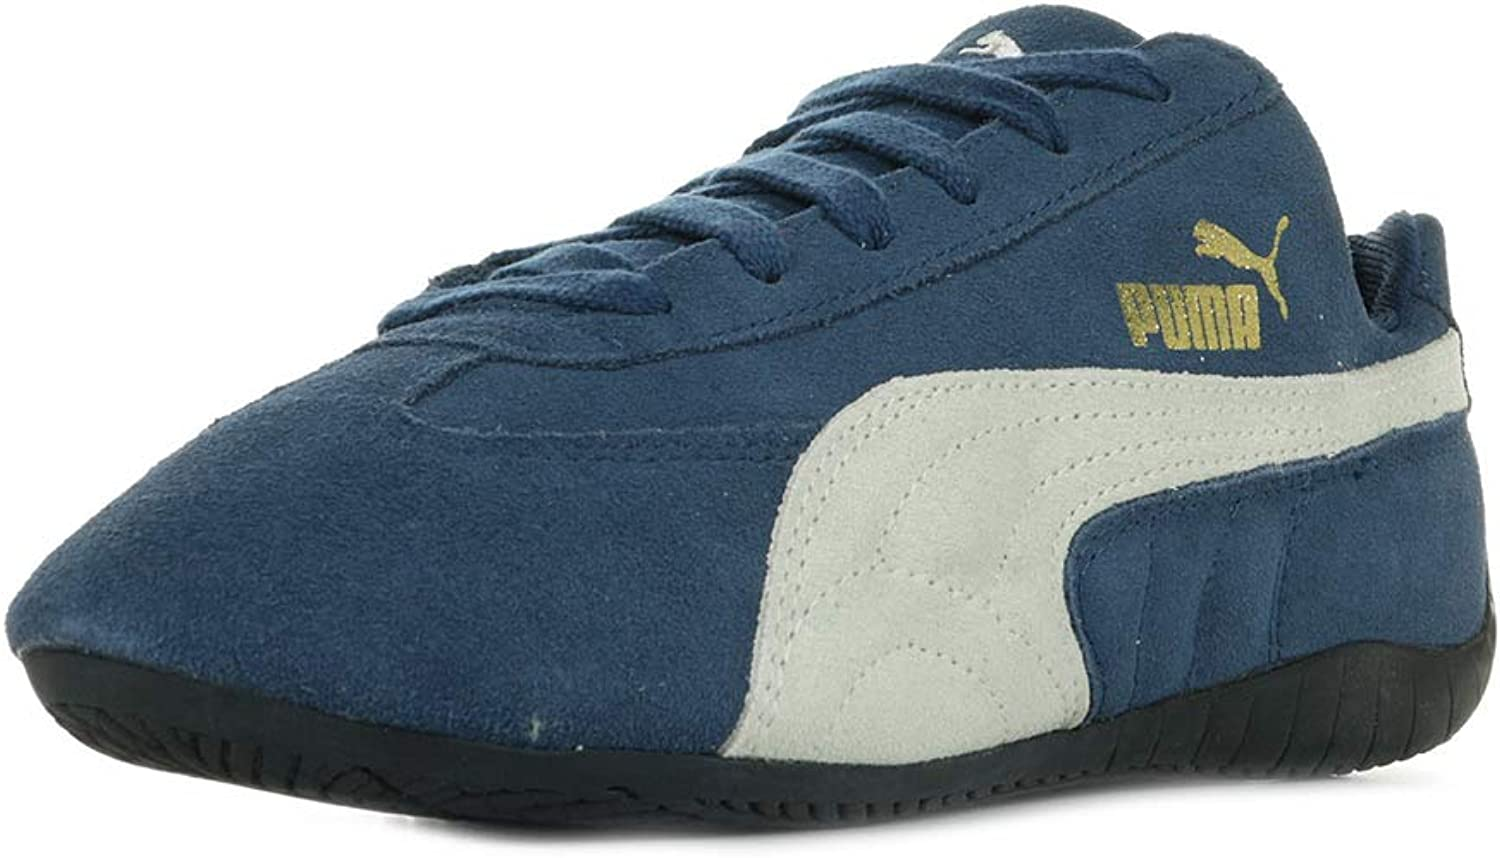 Puma Unisex Adults' Speed Cat Low-Top Sneakers